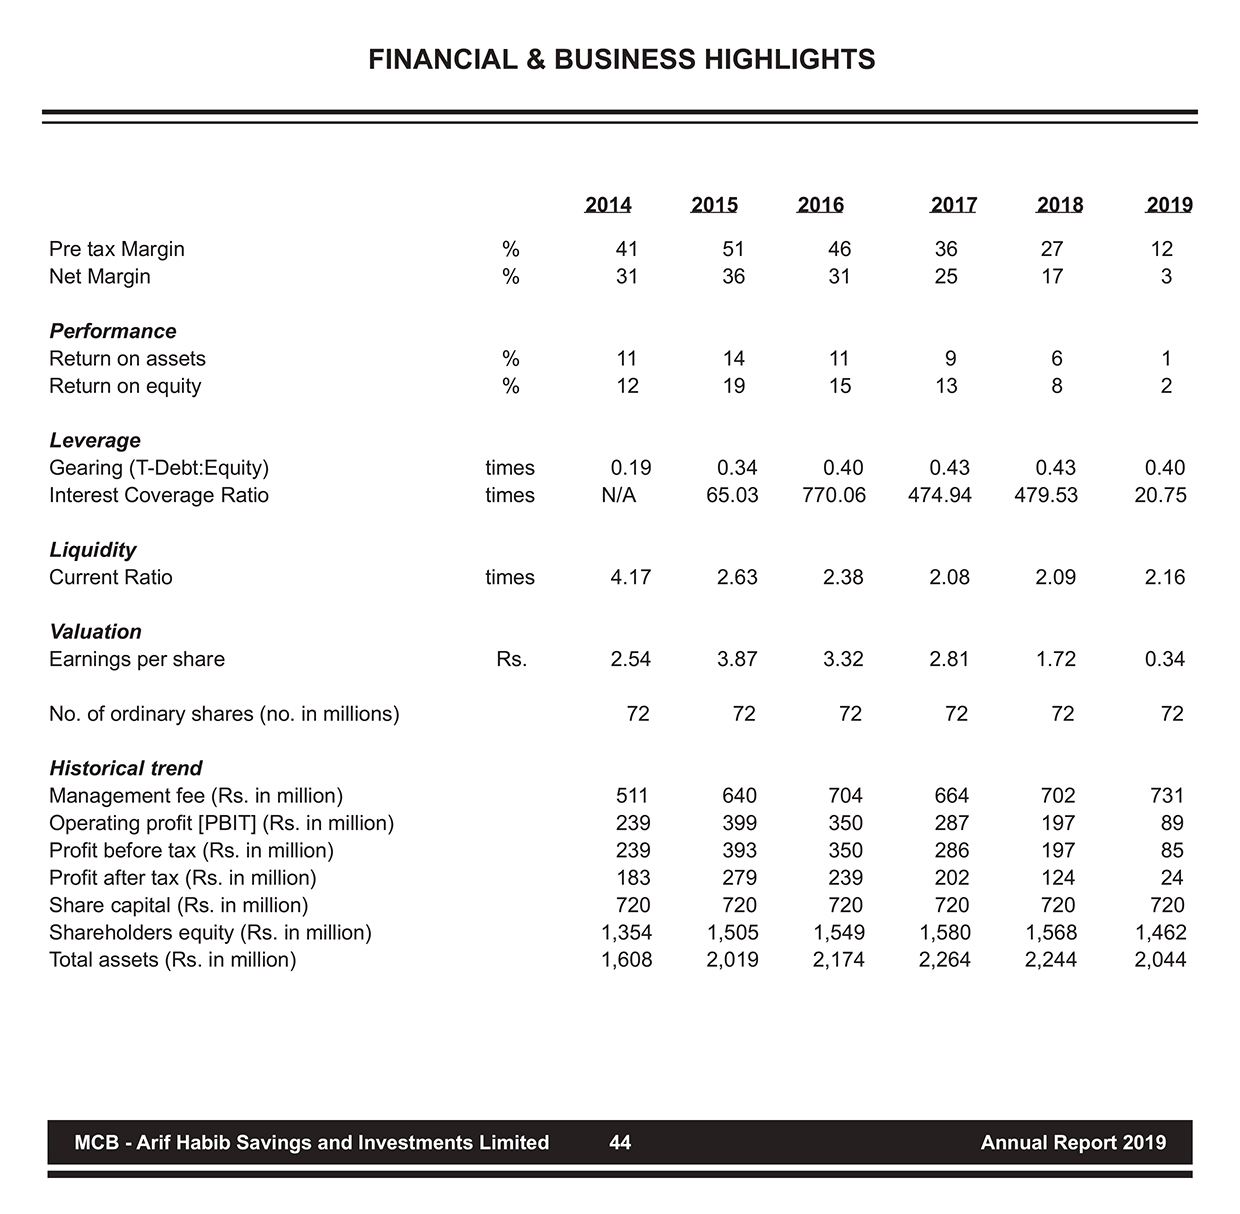 financialhighlights